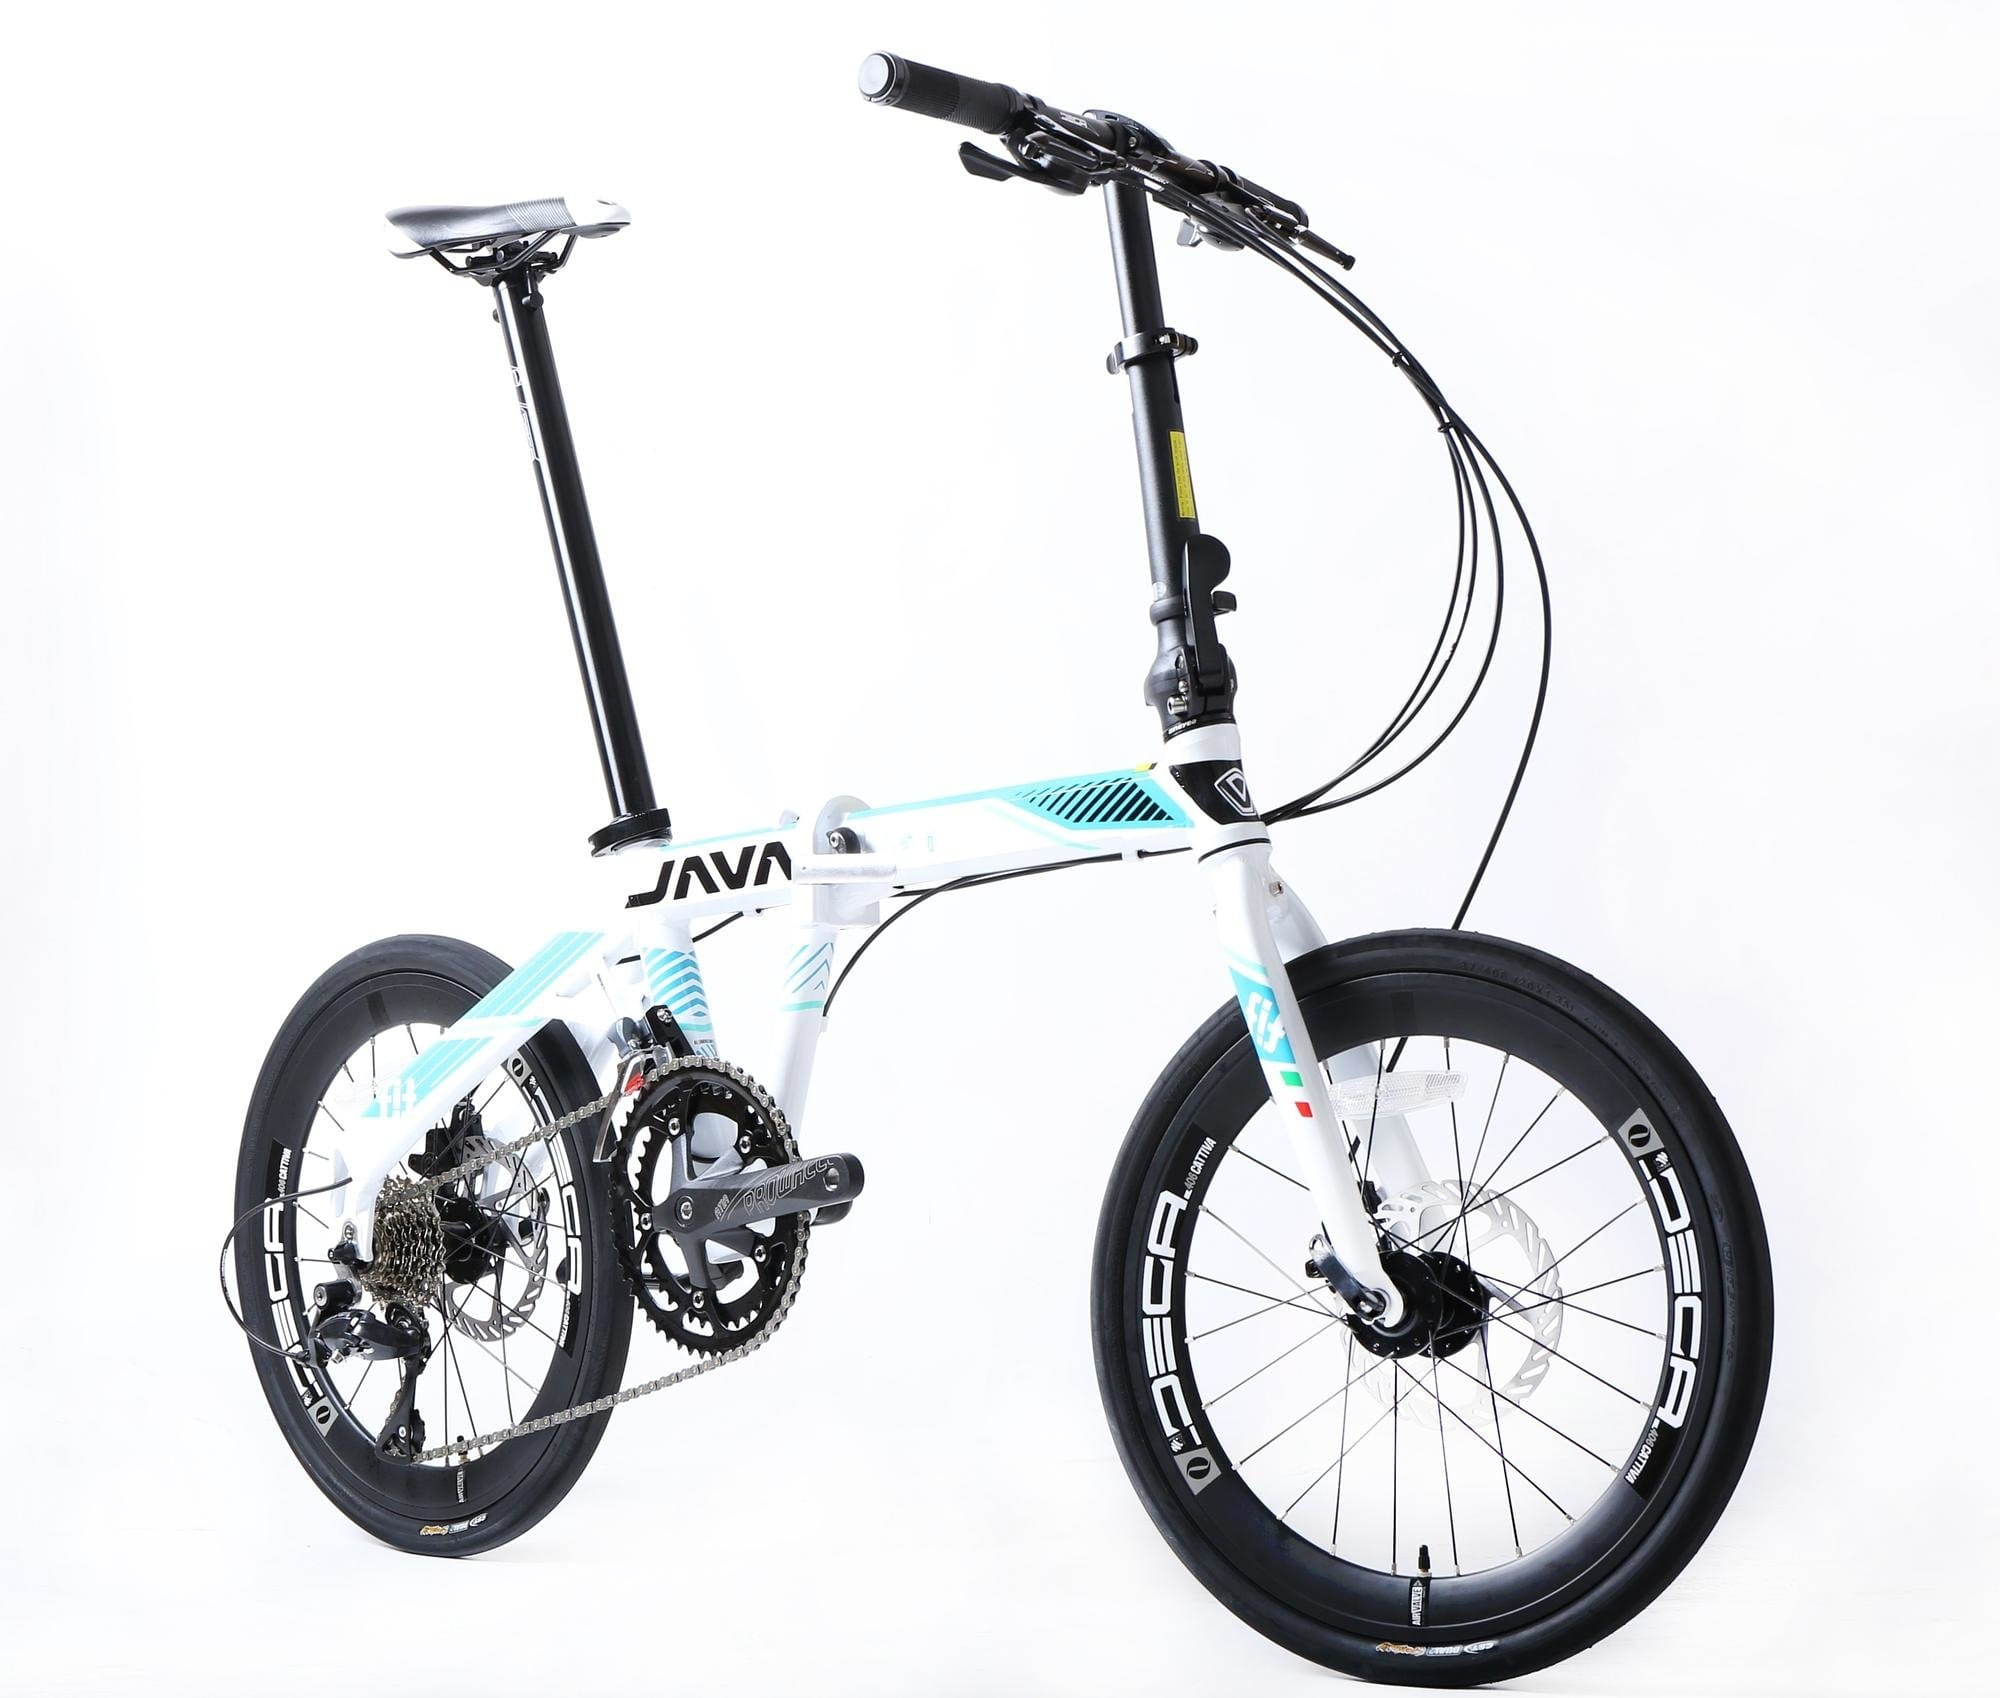 JAVA Fit 18 Foldable Bicycle 20-Inch